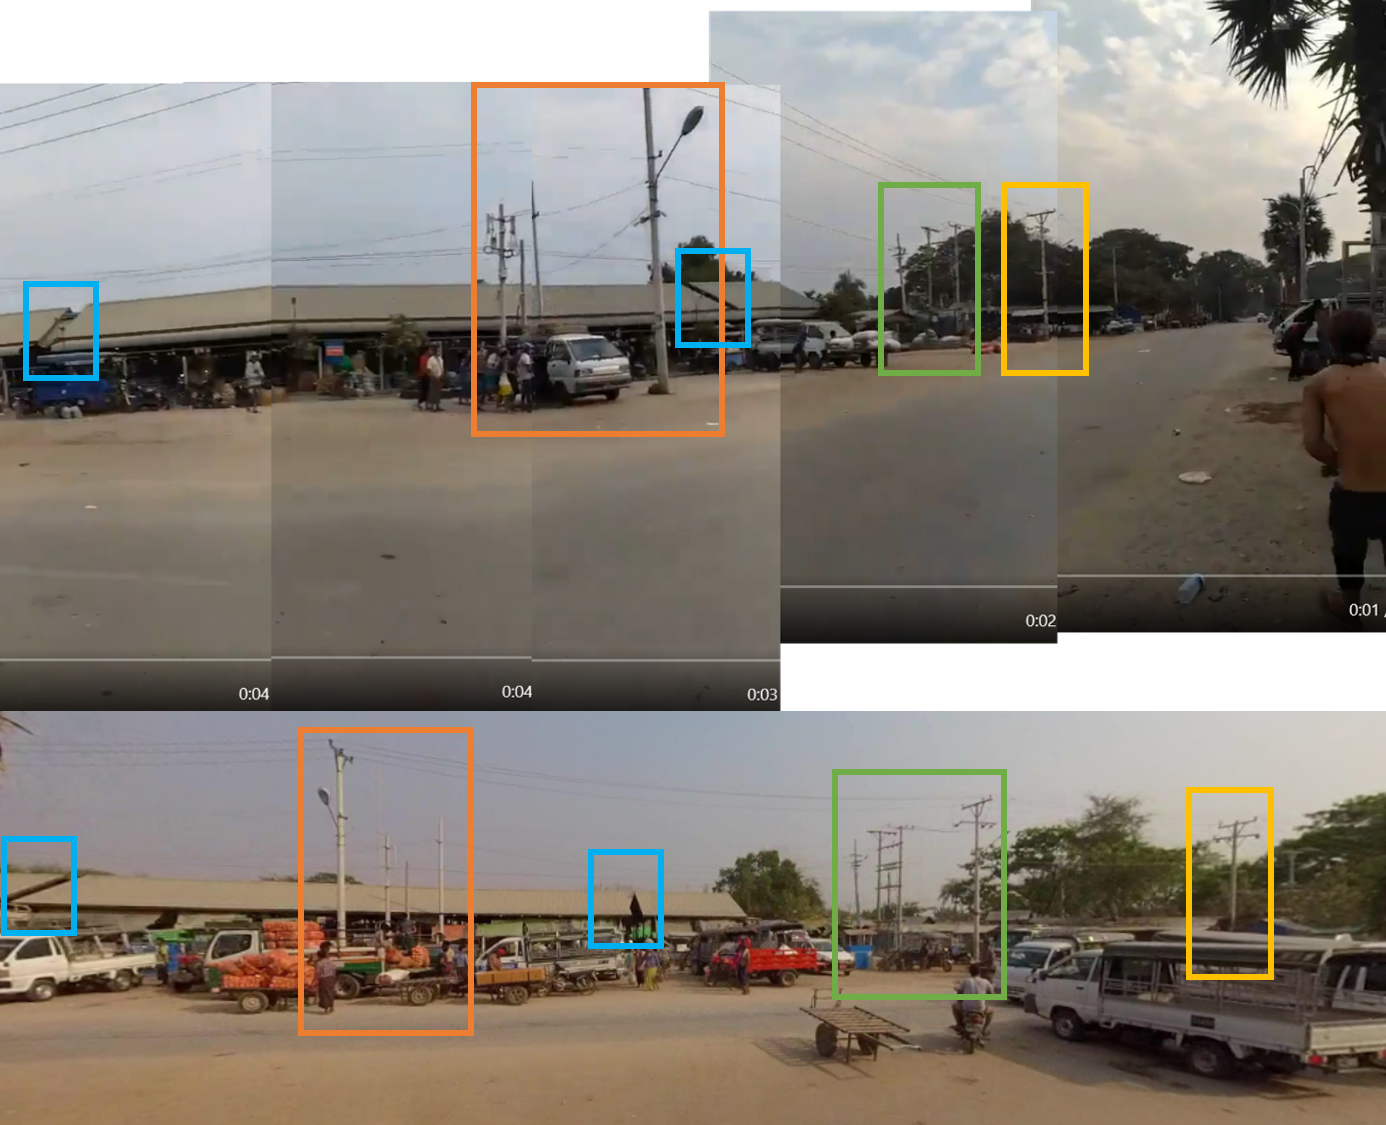 Above: This panorama image was constructed by placing multiple screengrabs from the video side by side. Below: Screengrab of Google Street View.